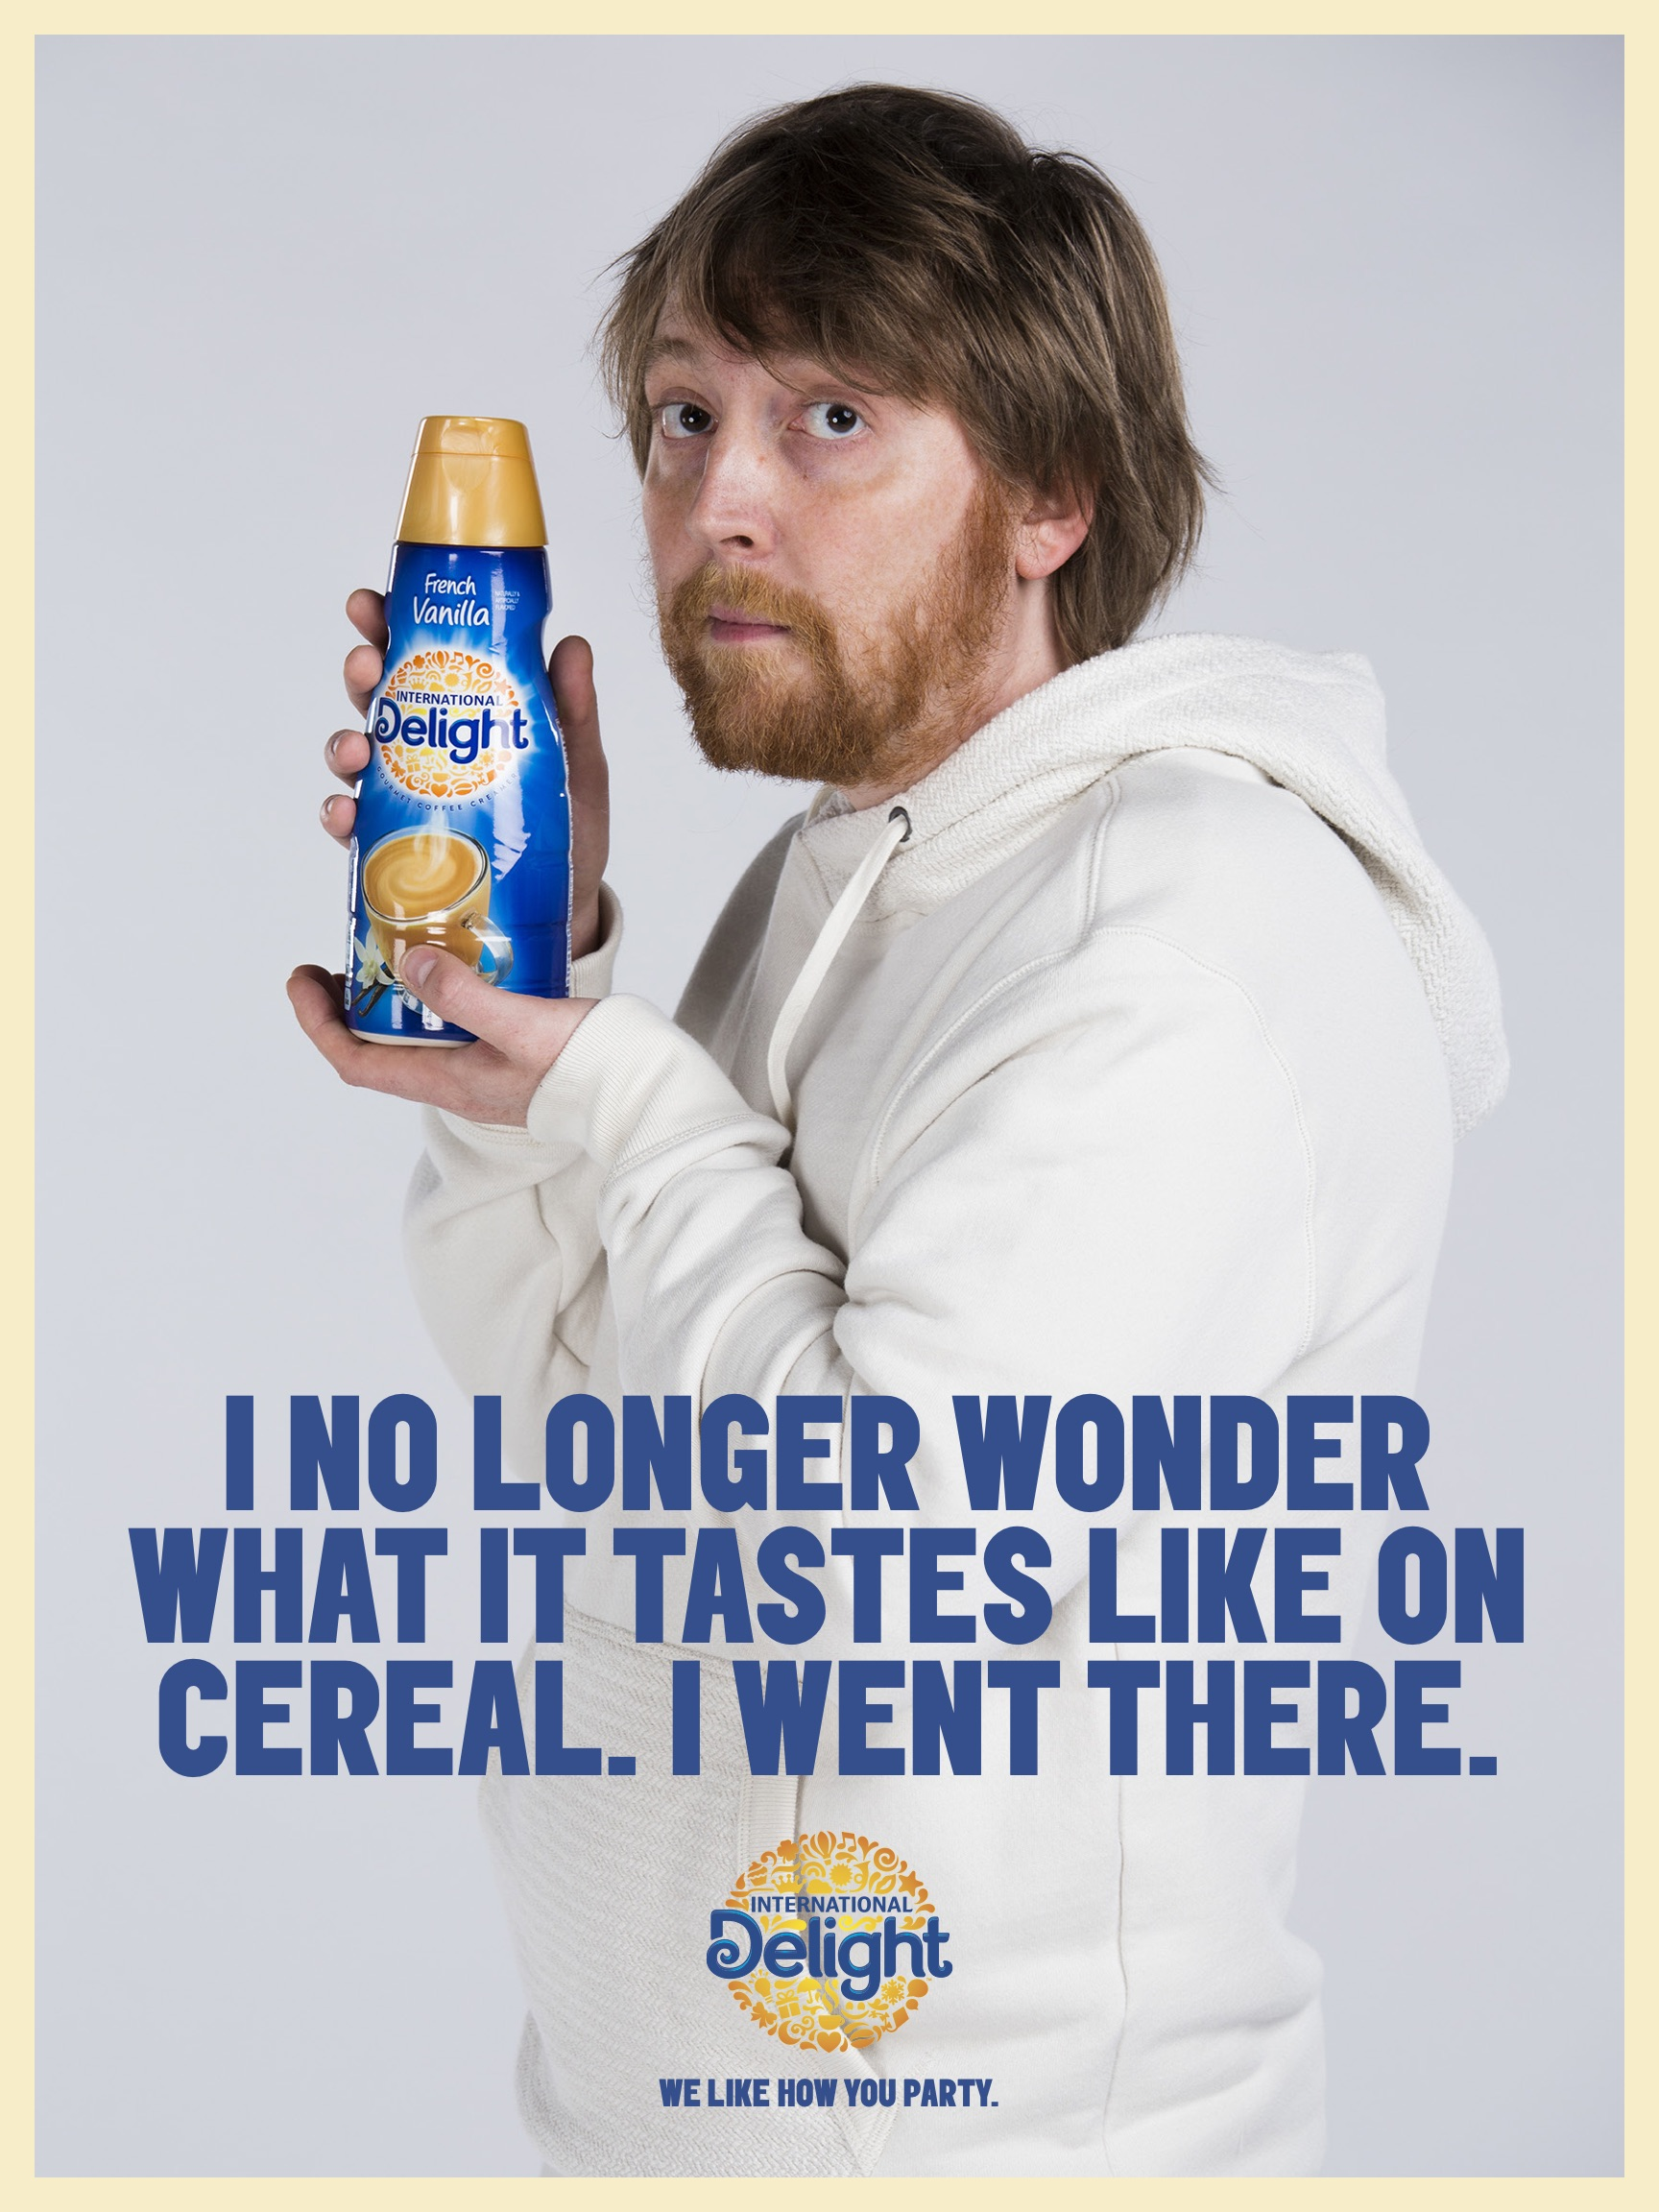 International Delight - I no longer wonder what it tastes like on cereal. I went there.